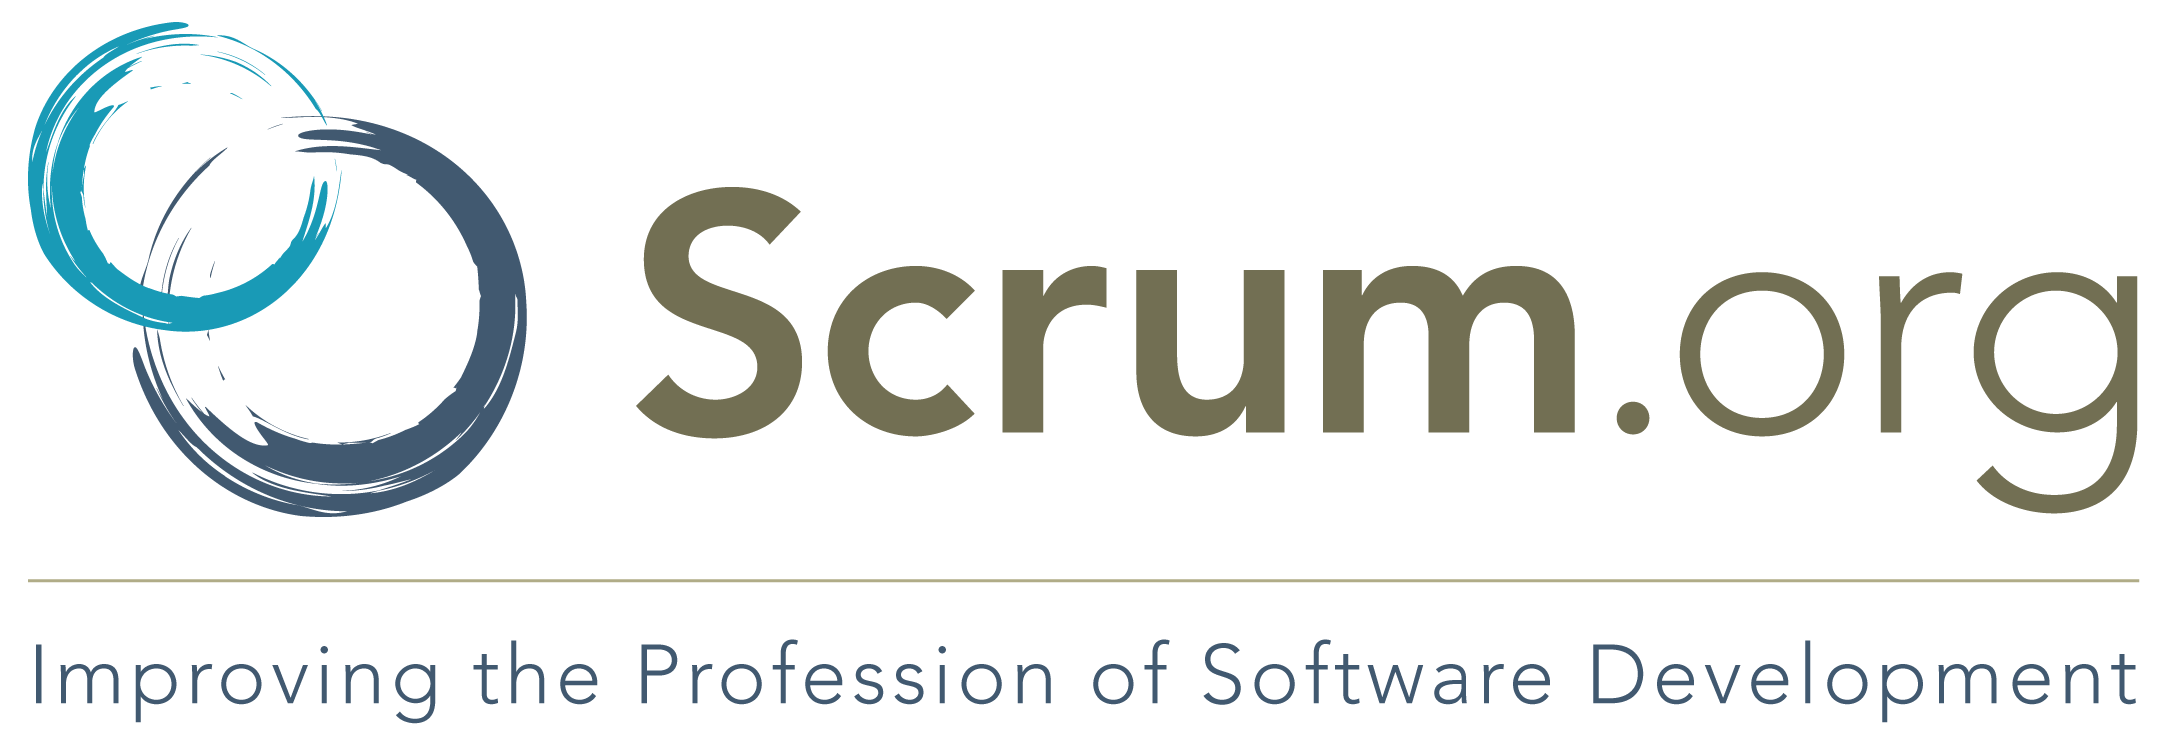 Scrum Master And Product Owner Certifications Exam Cost And